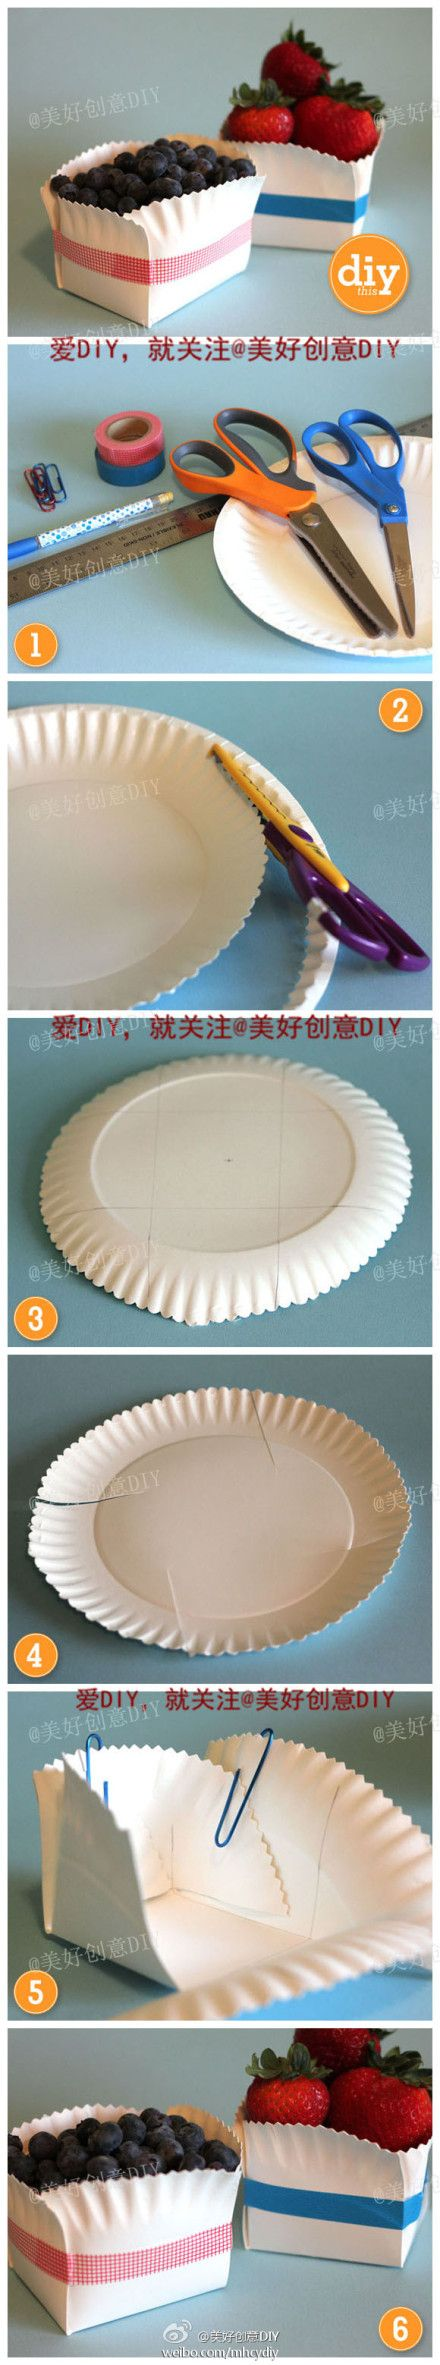 paper plate + scalloped scissors + washi tape = cuteness